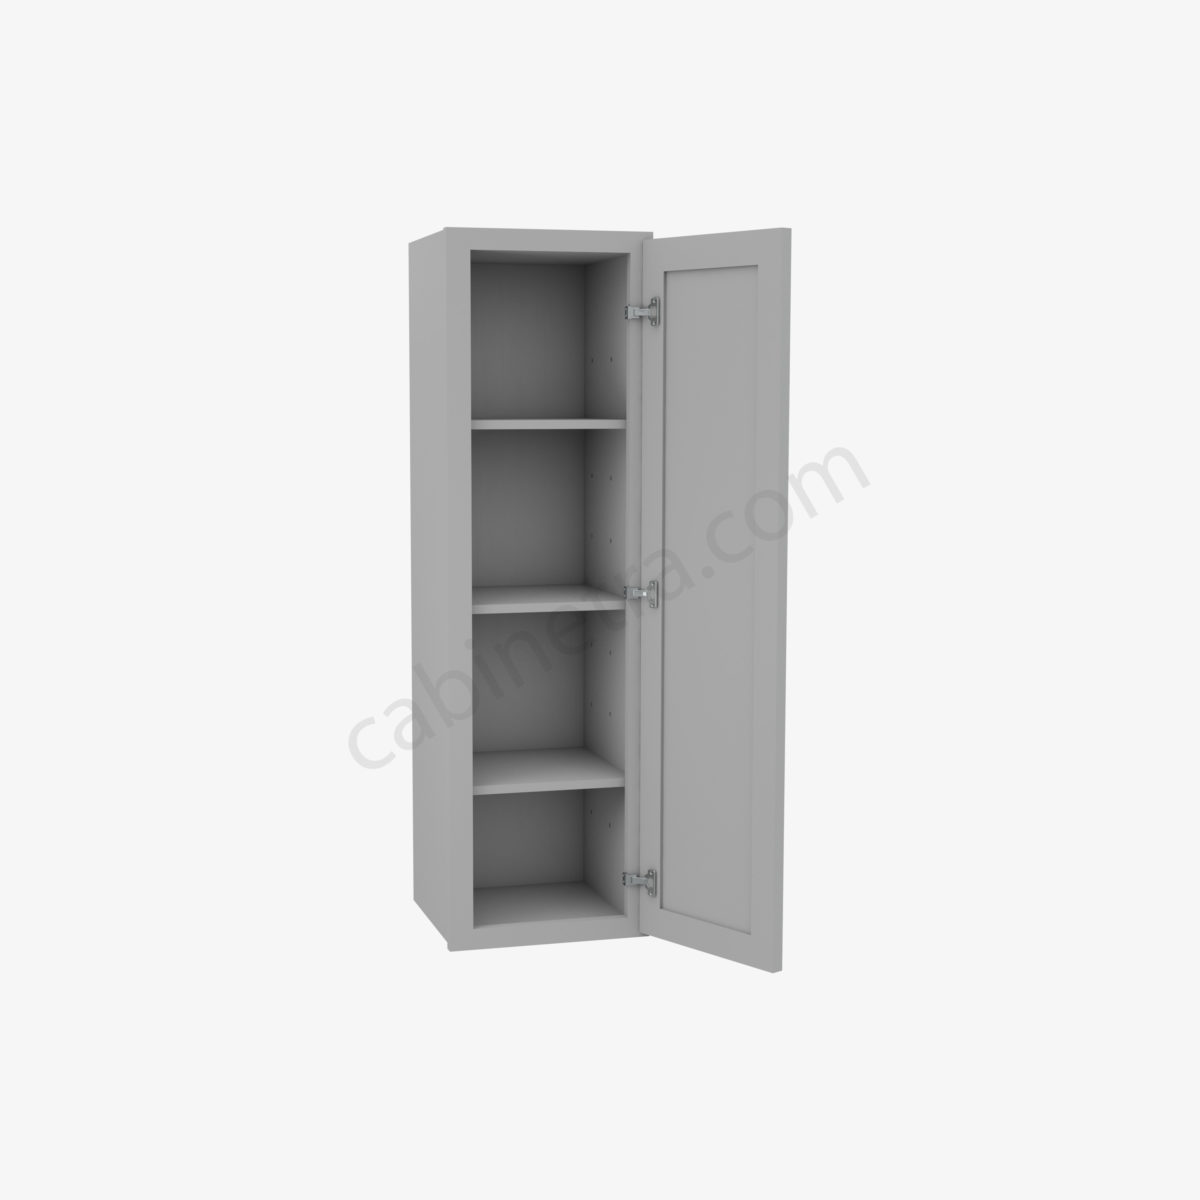 AB W1242 1 Forevermark Lait Gray Shaker Cabinetra scaled